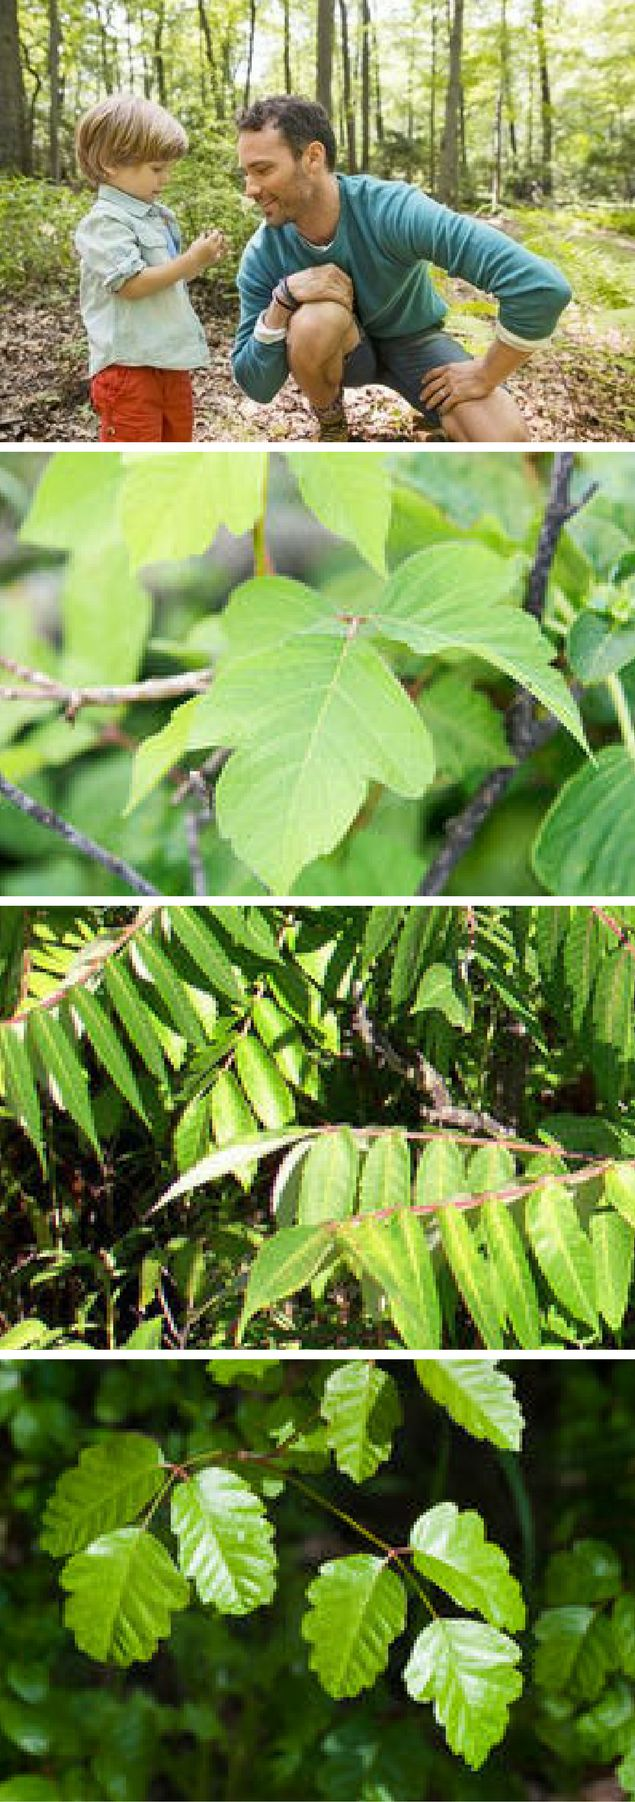 The Differences Between Poison Ivy, Poison Oak, and Poison Sumac - Learn how to recognize these pesky plants, where they grow, how to avoid them, and how to treat your child's rash if she comes into contact with any of them.